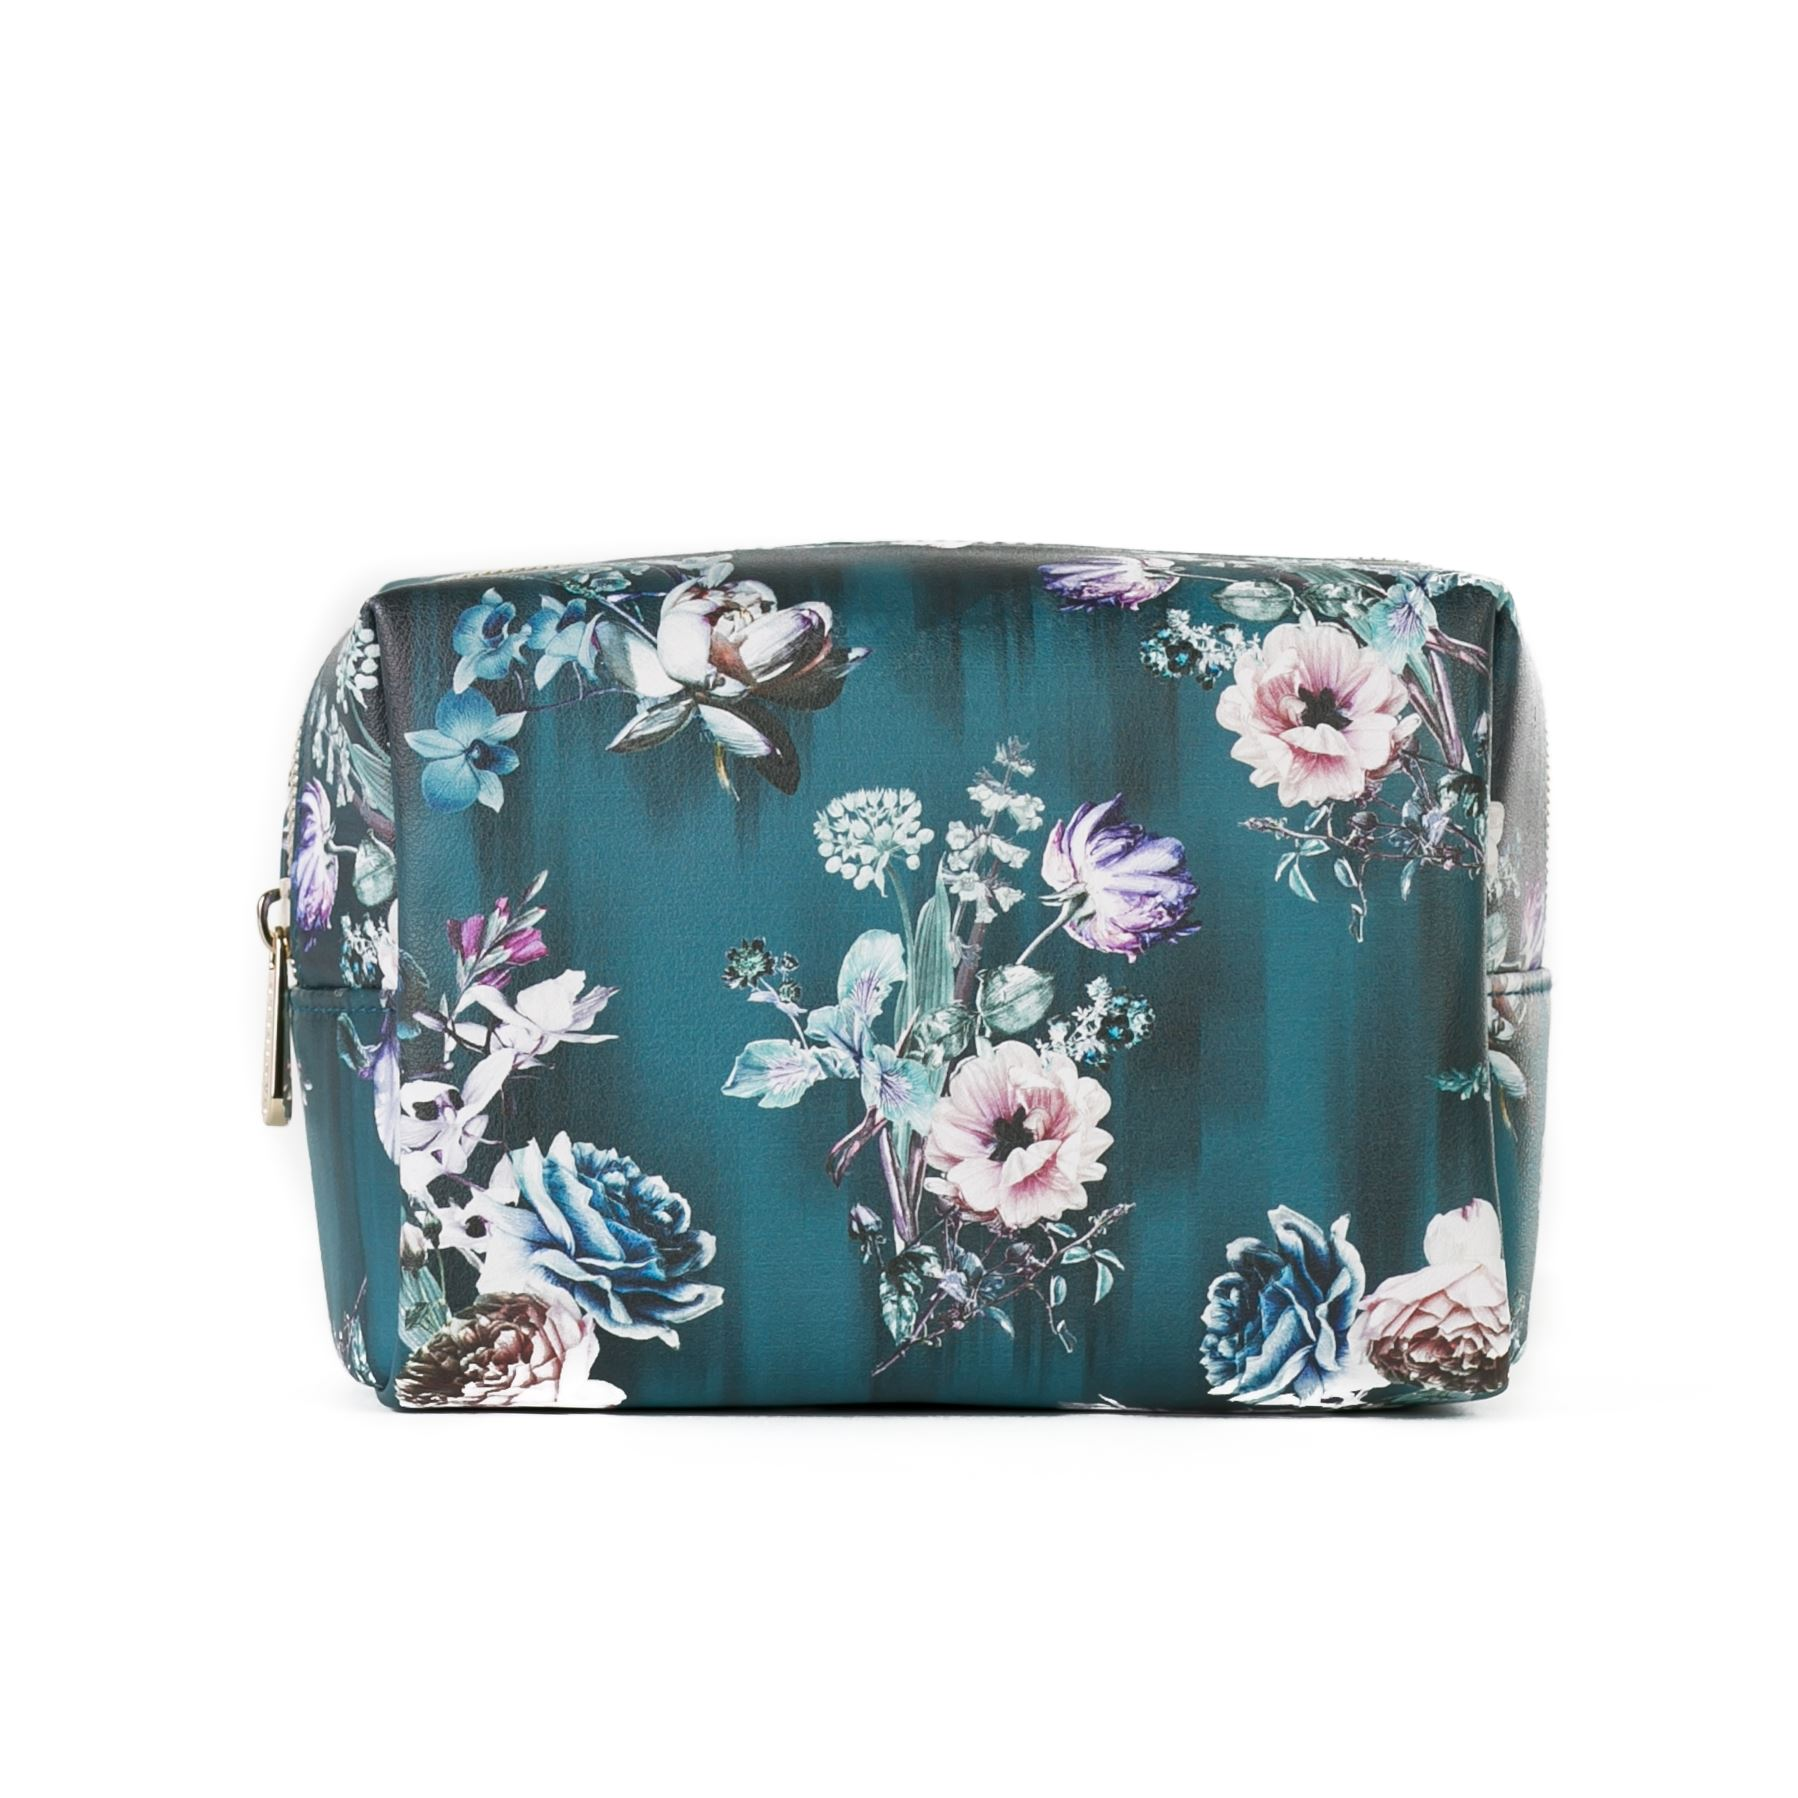 41c818e47ce8 Details about Danielle Creations Wild & Bloom Teal Floral Make Up Bag Boxy  Cosmetic Organiser